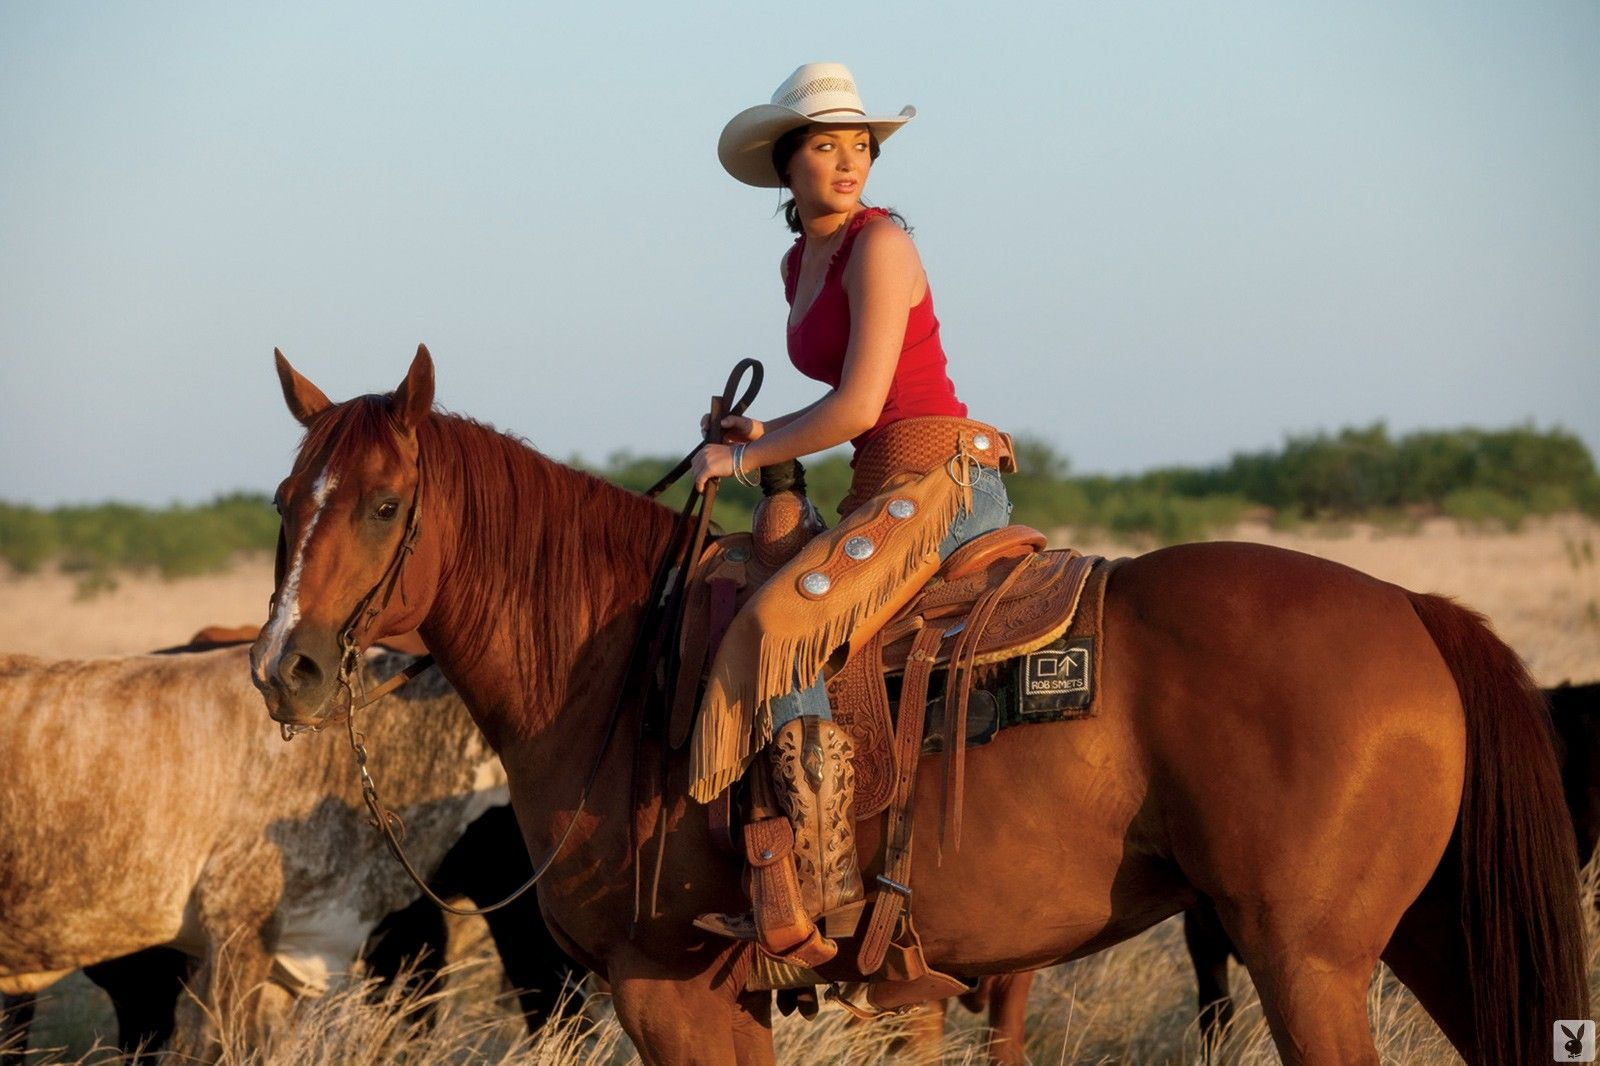 Pin By Larry Gooch On Hop On A Horse Cowgirl And Horse Horses Rodeo Girls